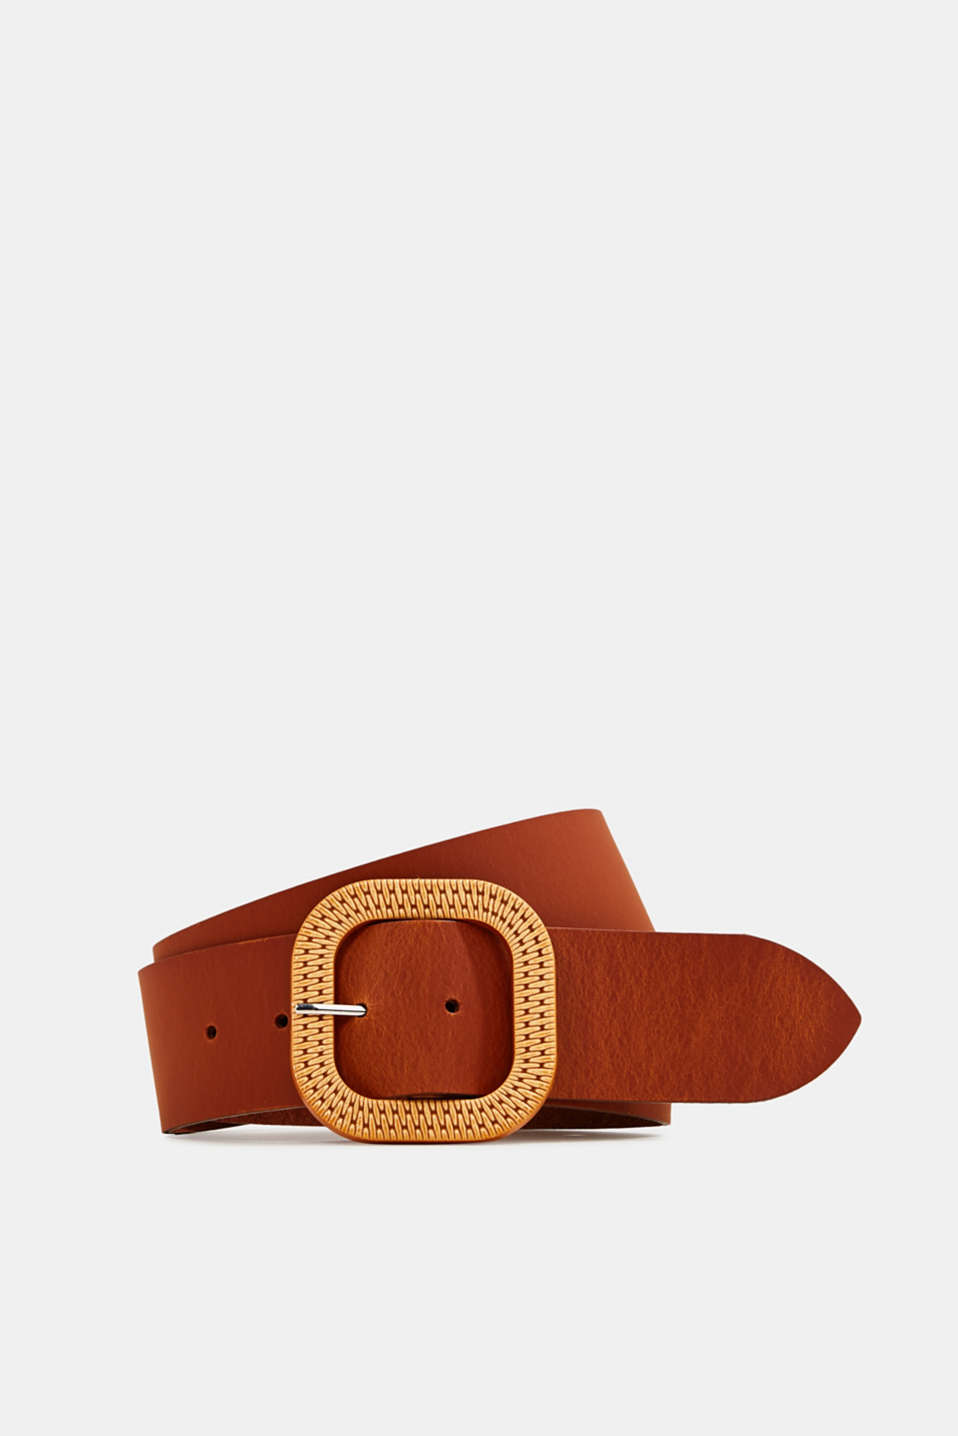 Esprit - Made of leather: belt with a buckle in a braided look